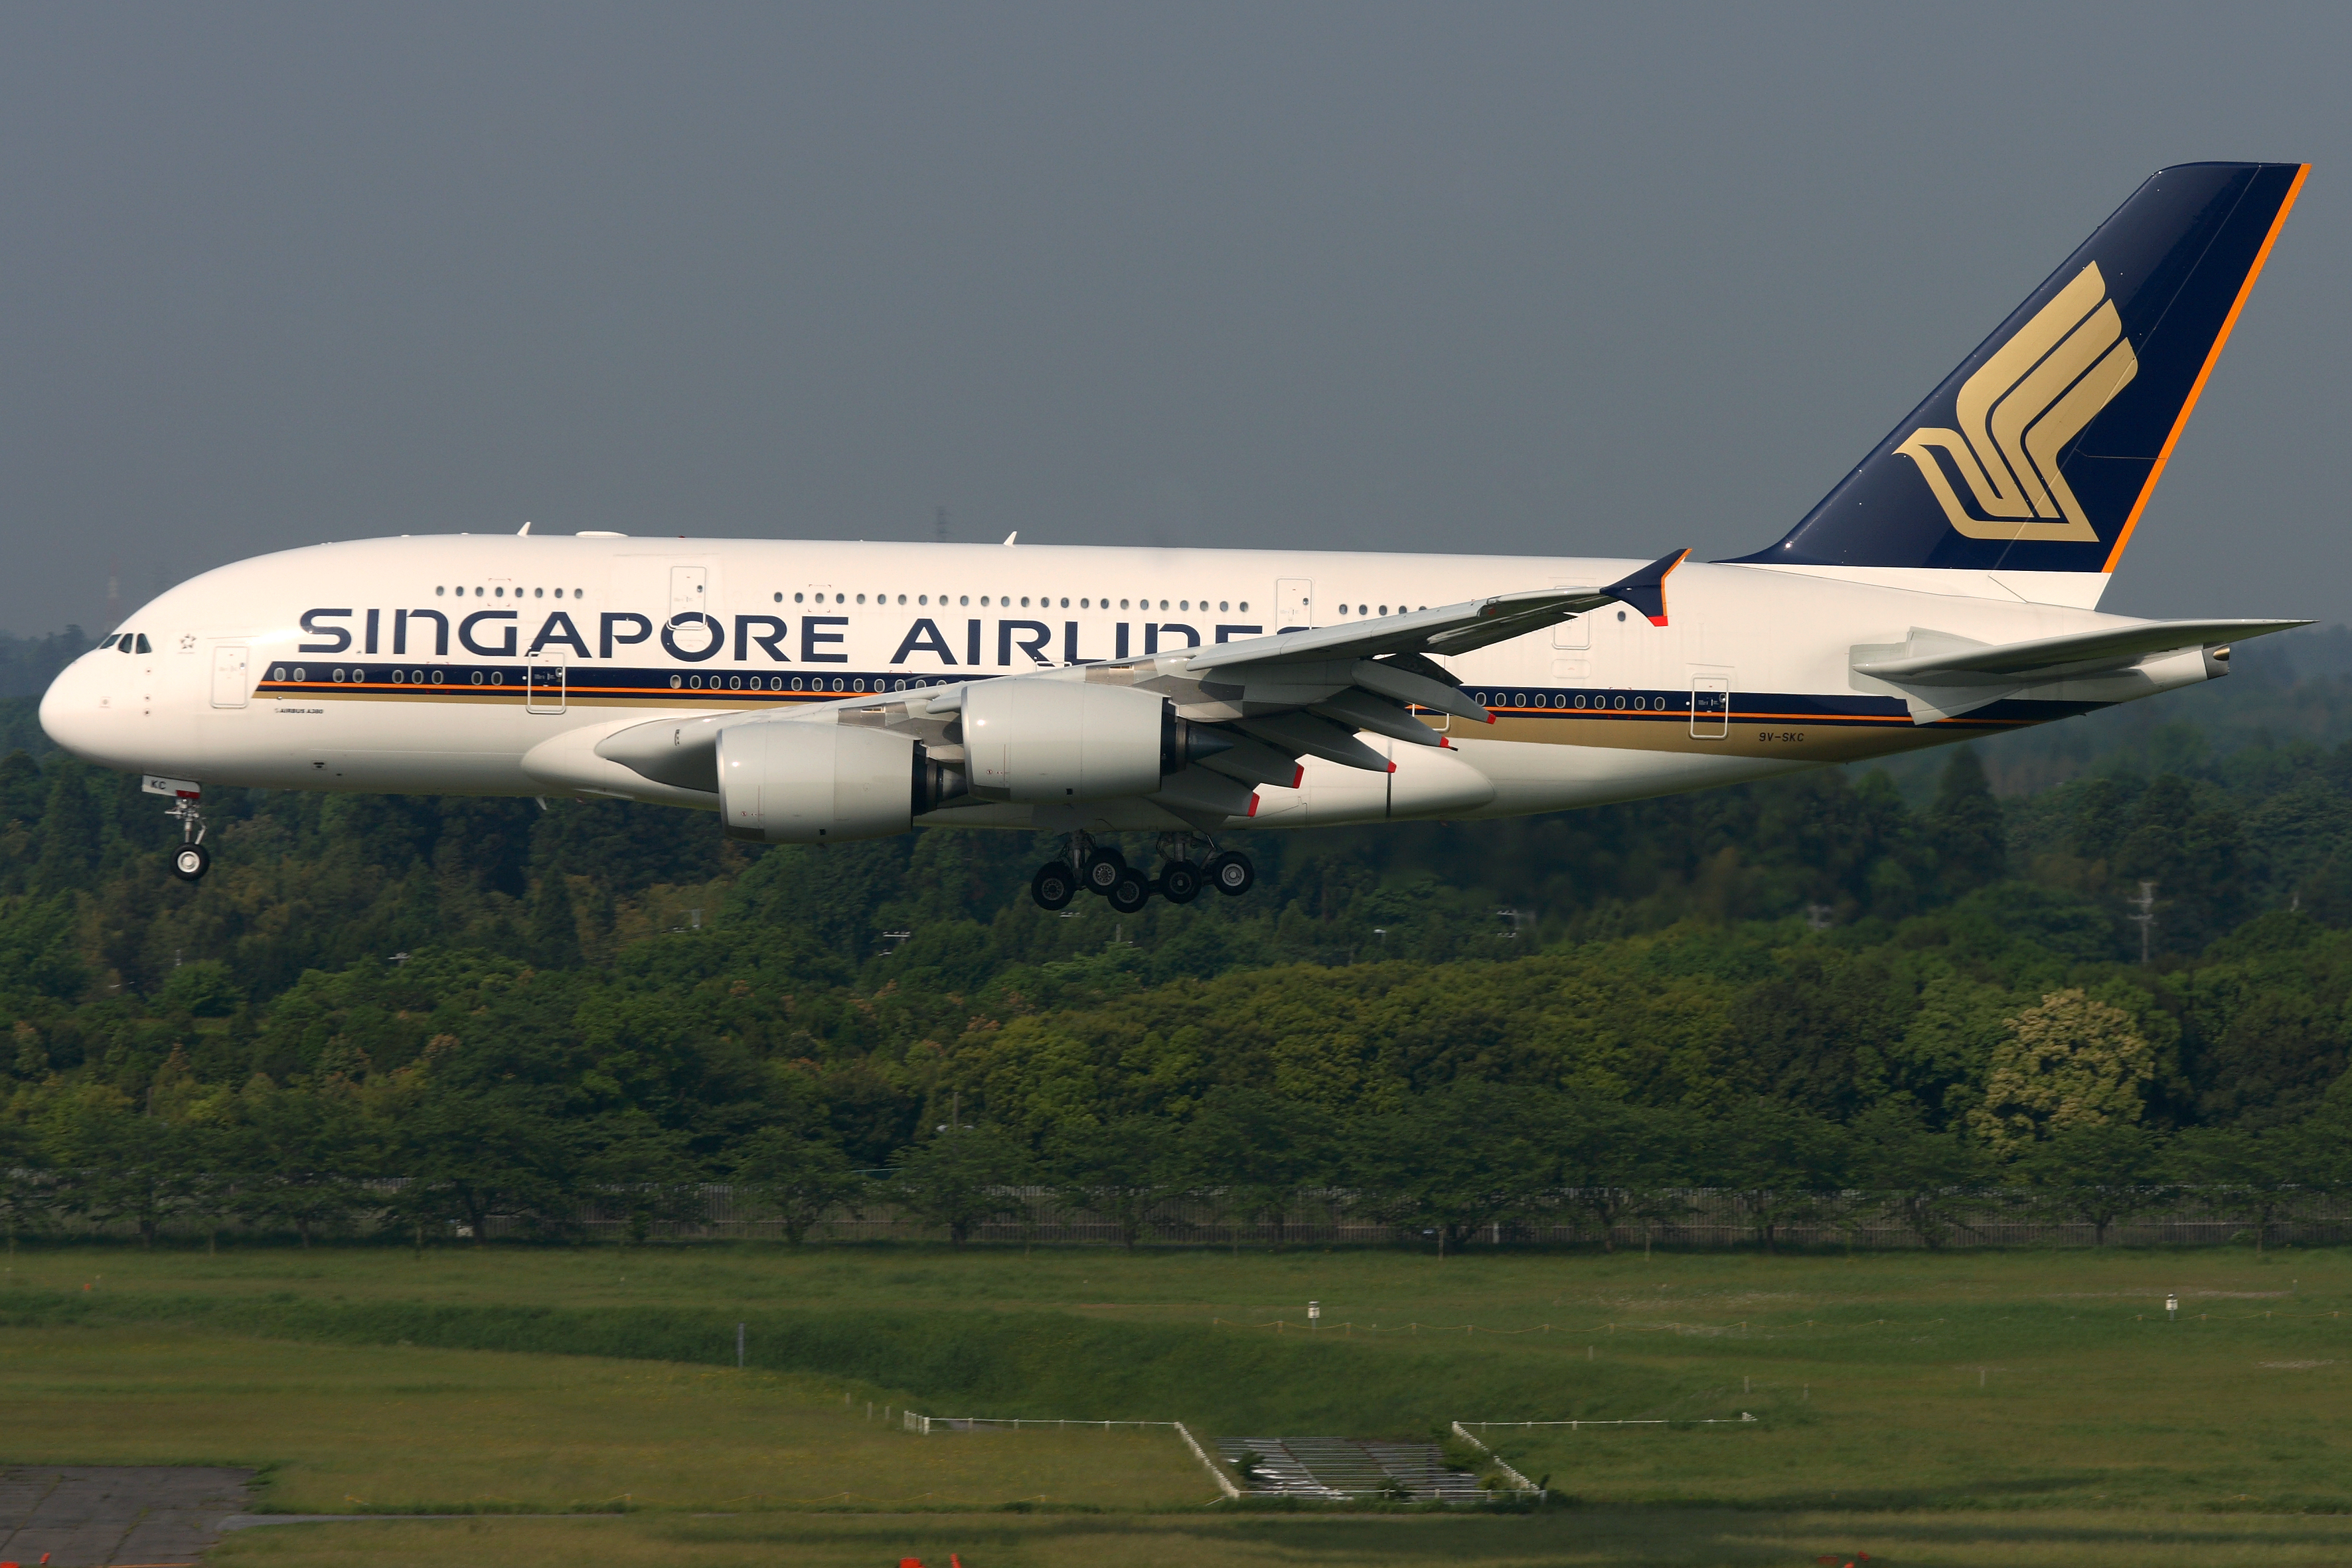 The Singapore Airlines Airbus A380 will operate daily flights between Singapore and Auckland.